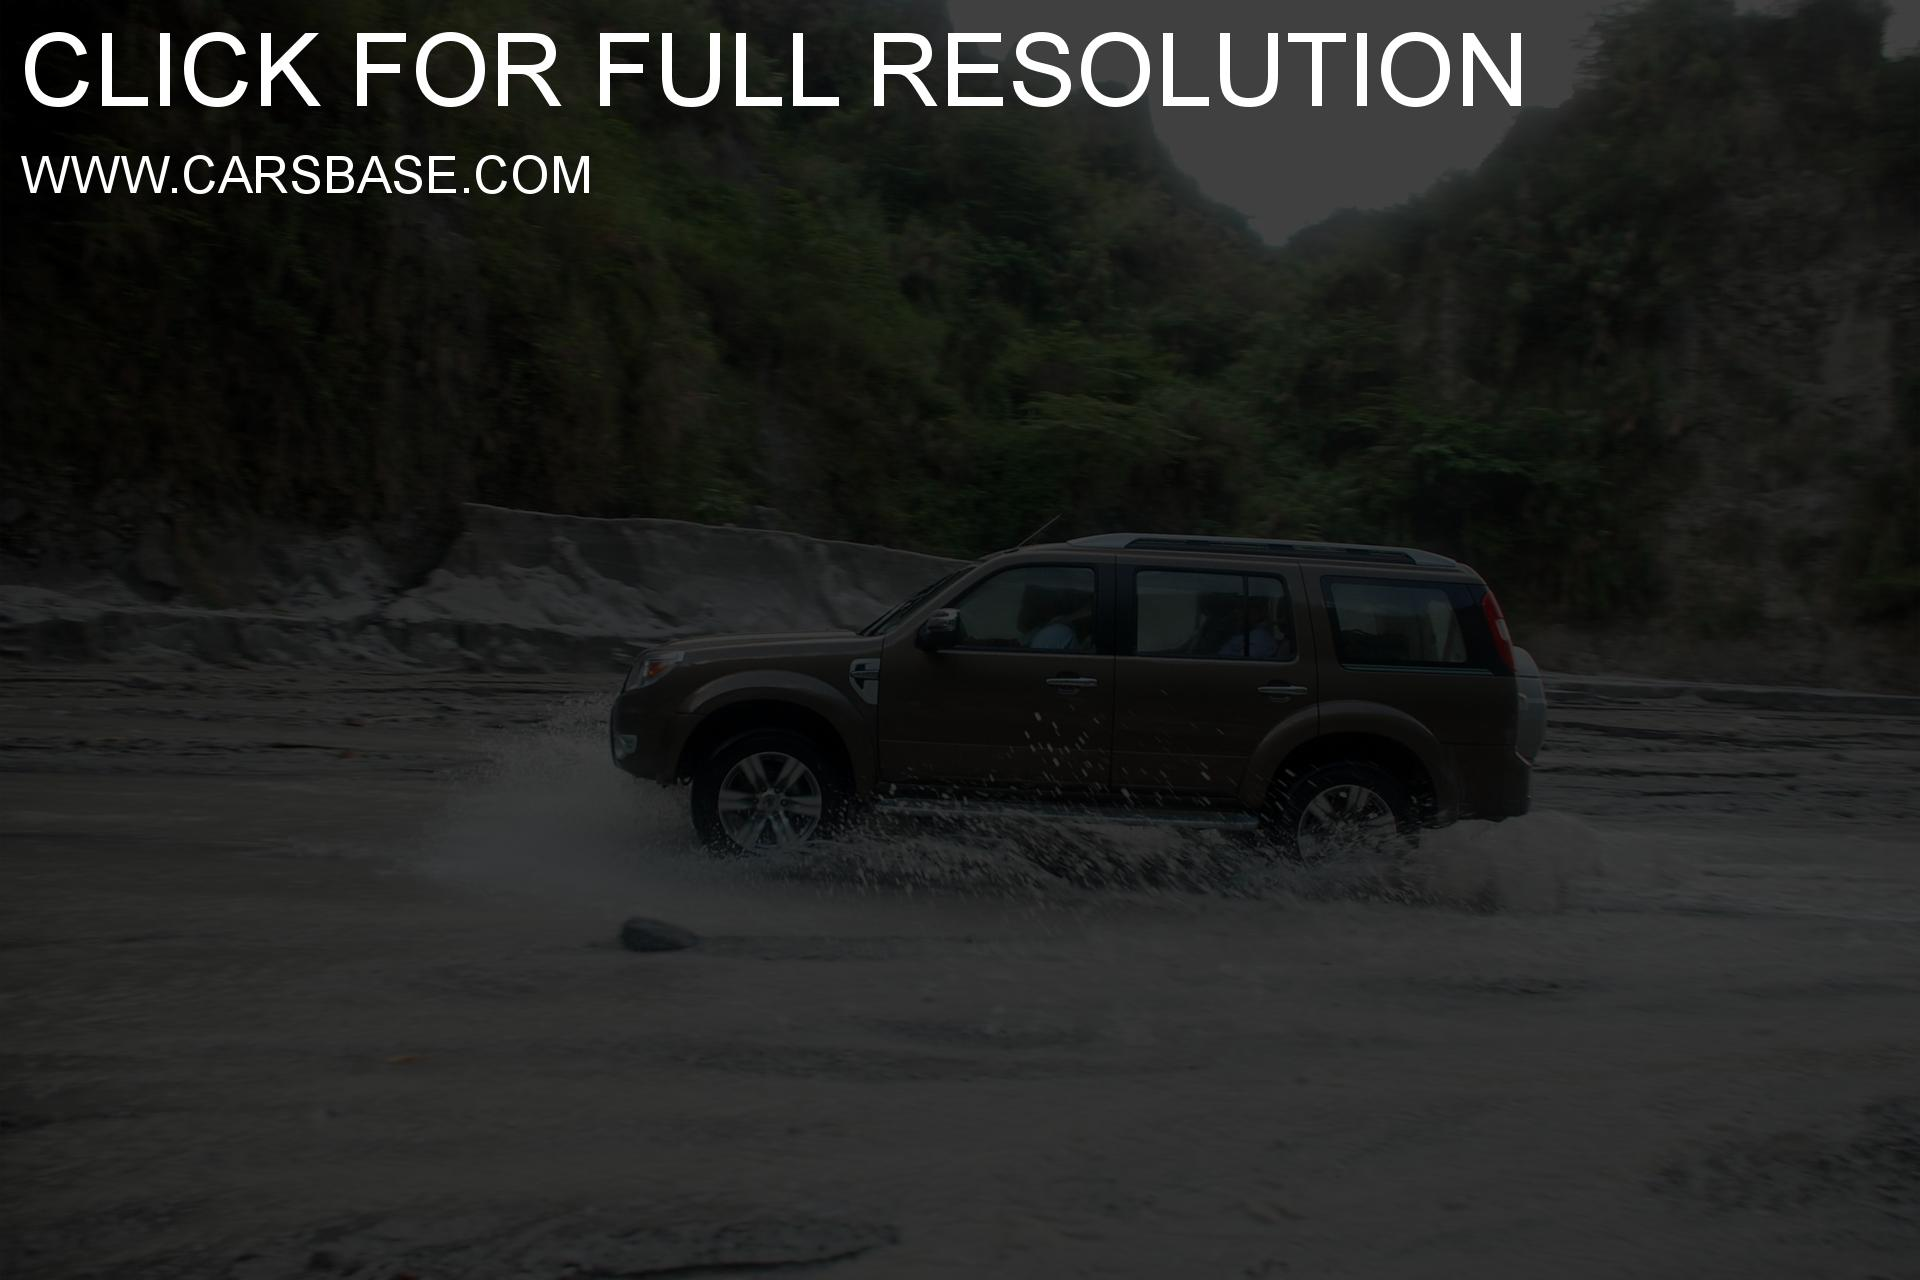 Ford everest photo - 2